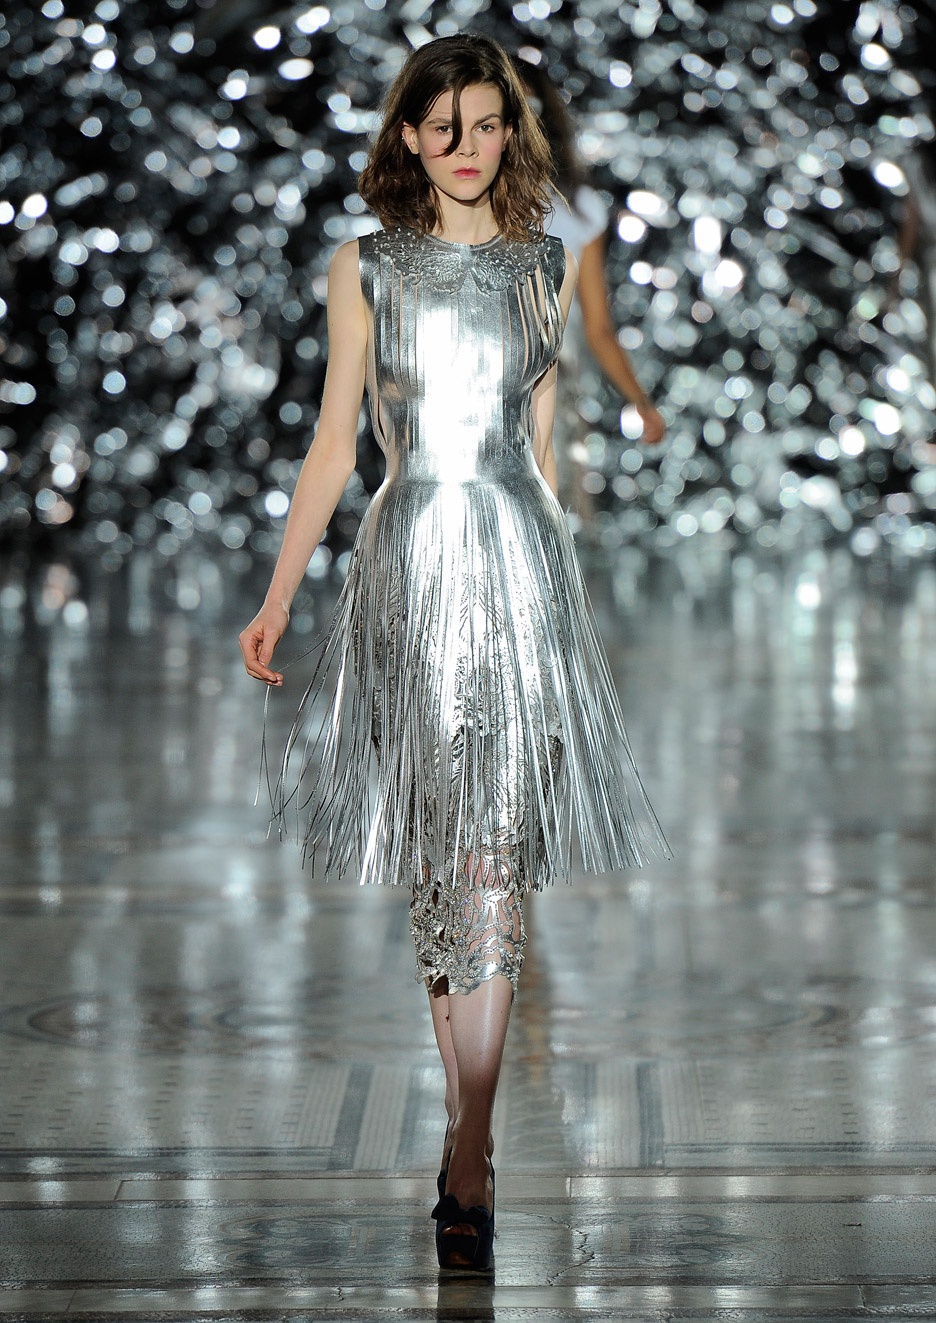 Metallic Leather Fringe Dress by Giles Deacon, 2012